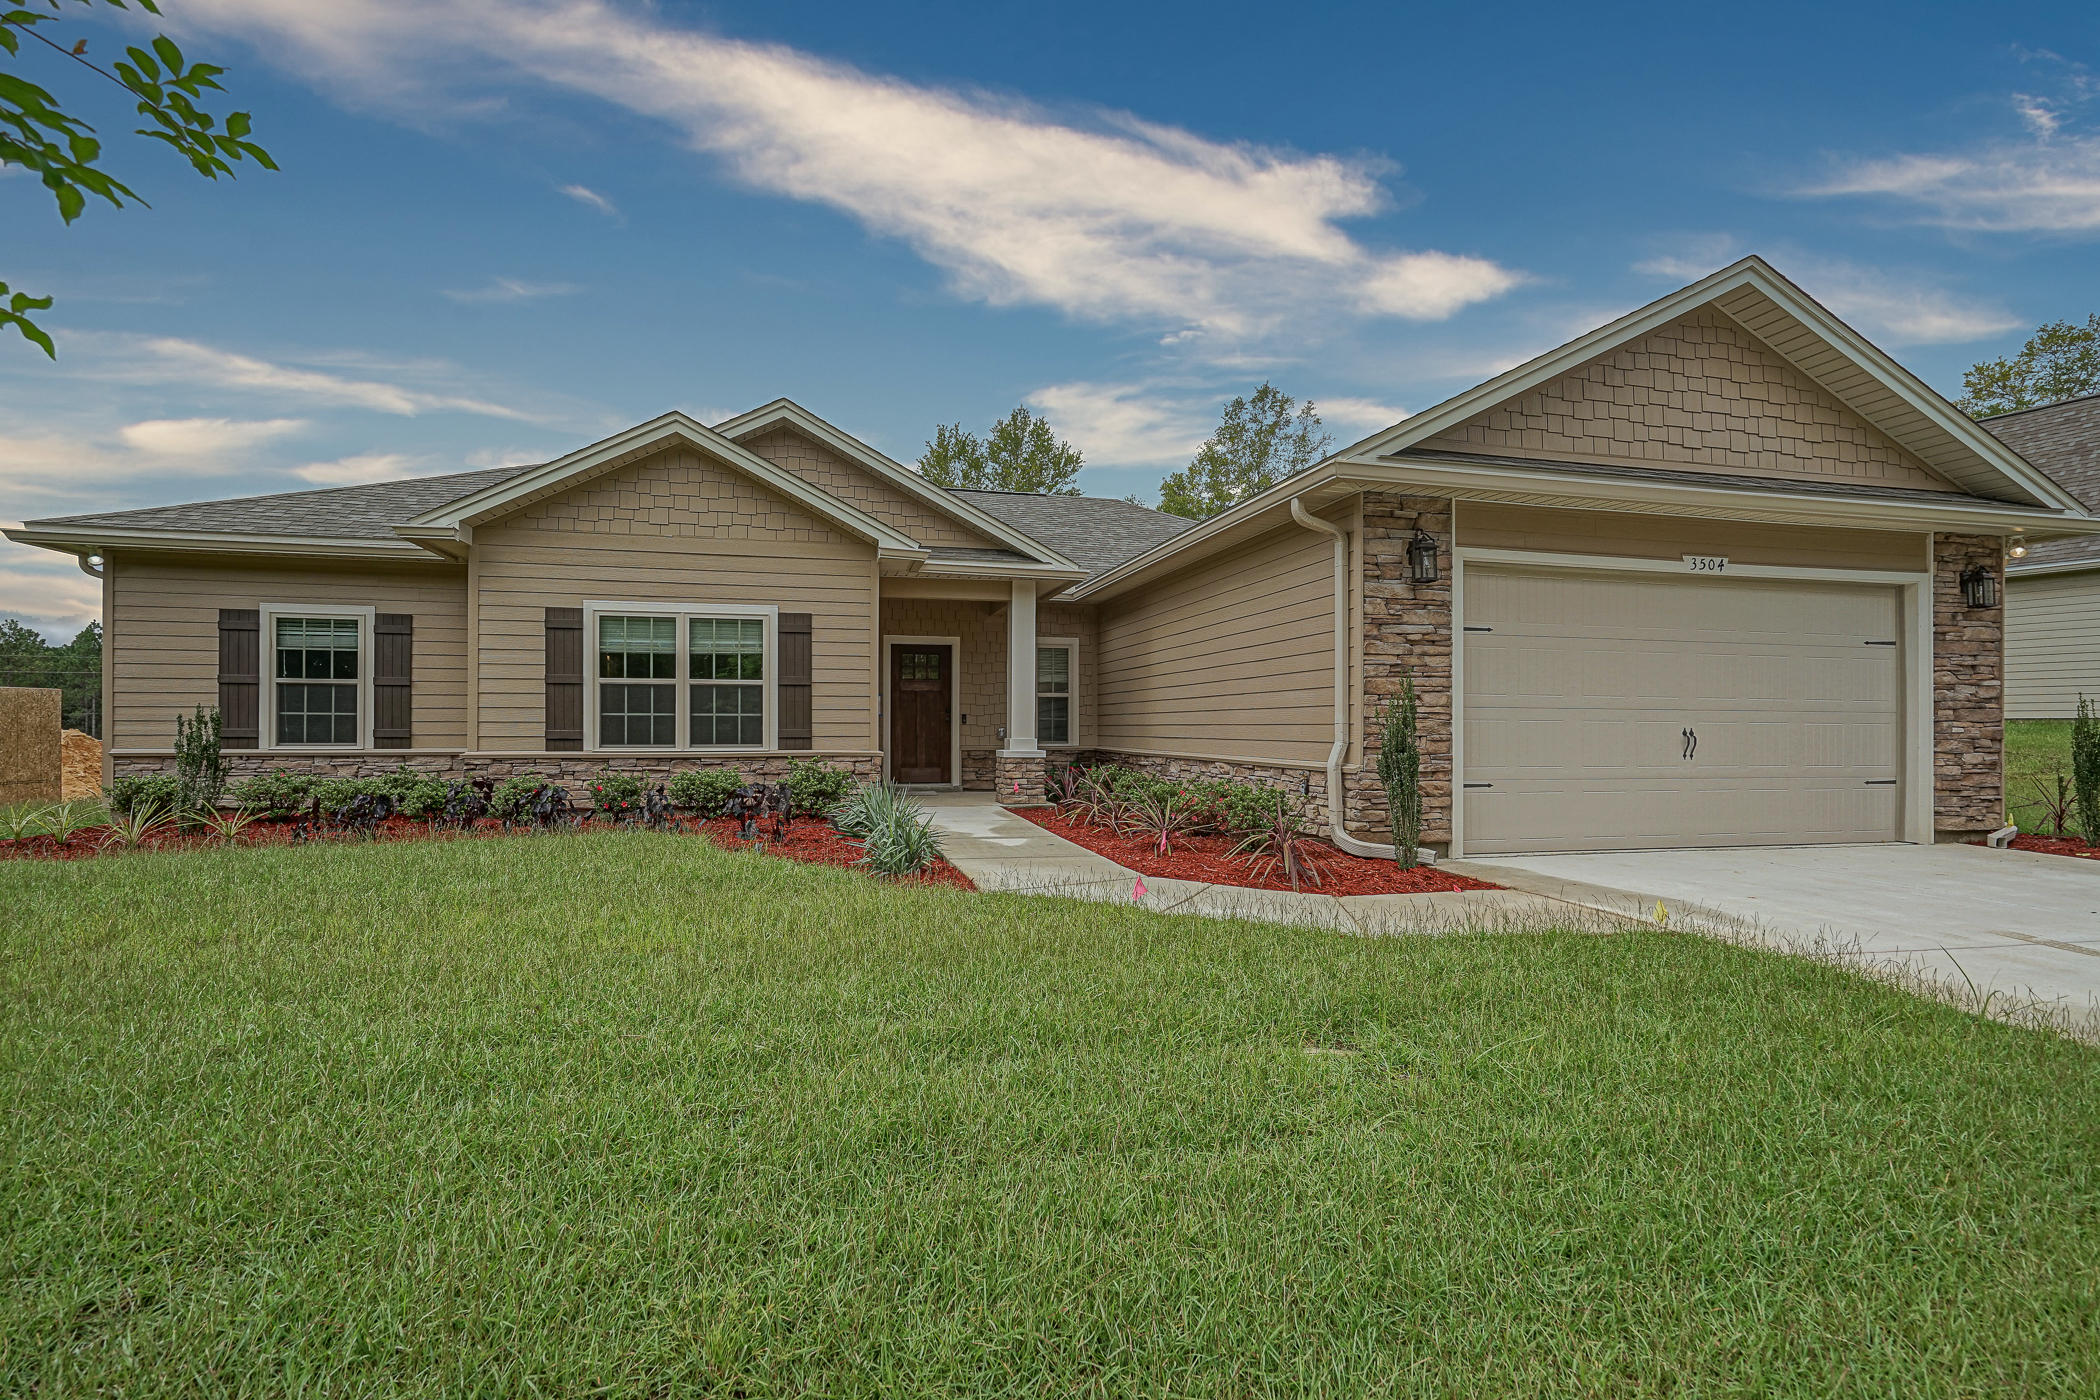 Photo of home for sale at 3506 Malus, Crestview FL